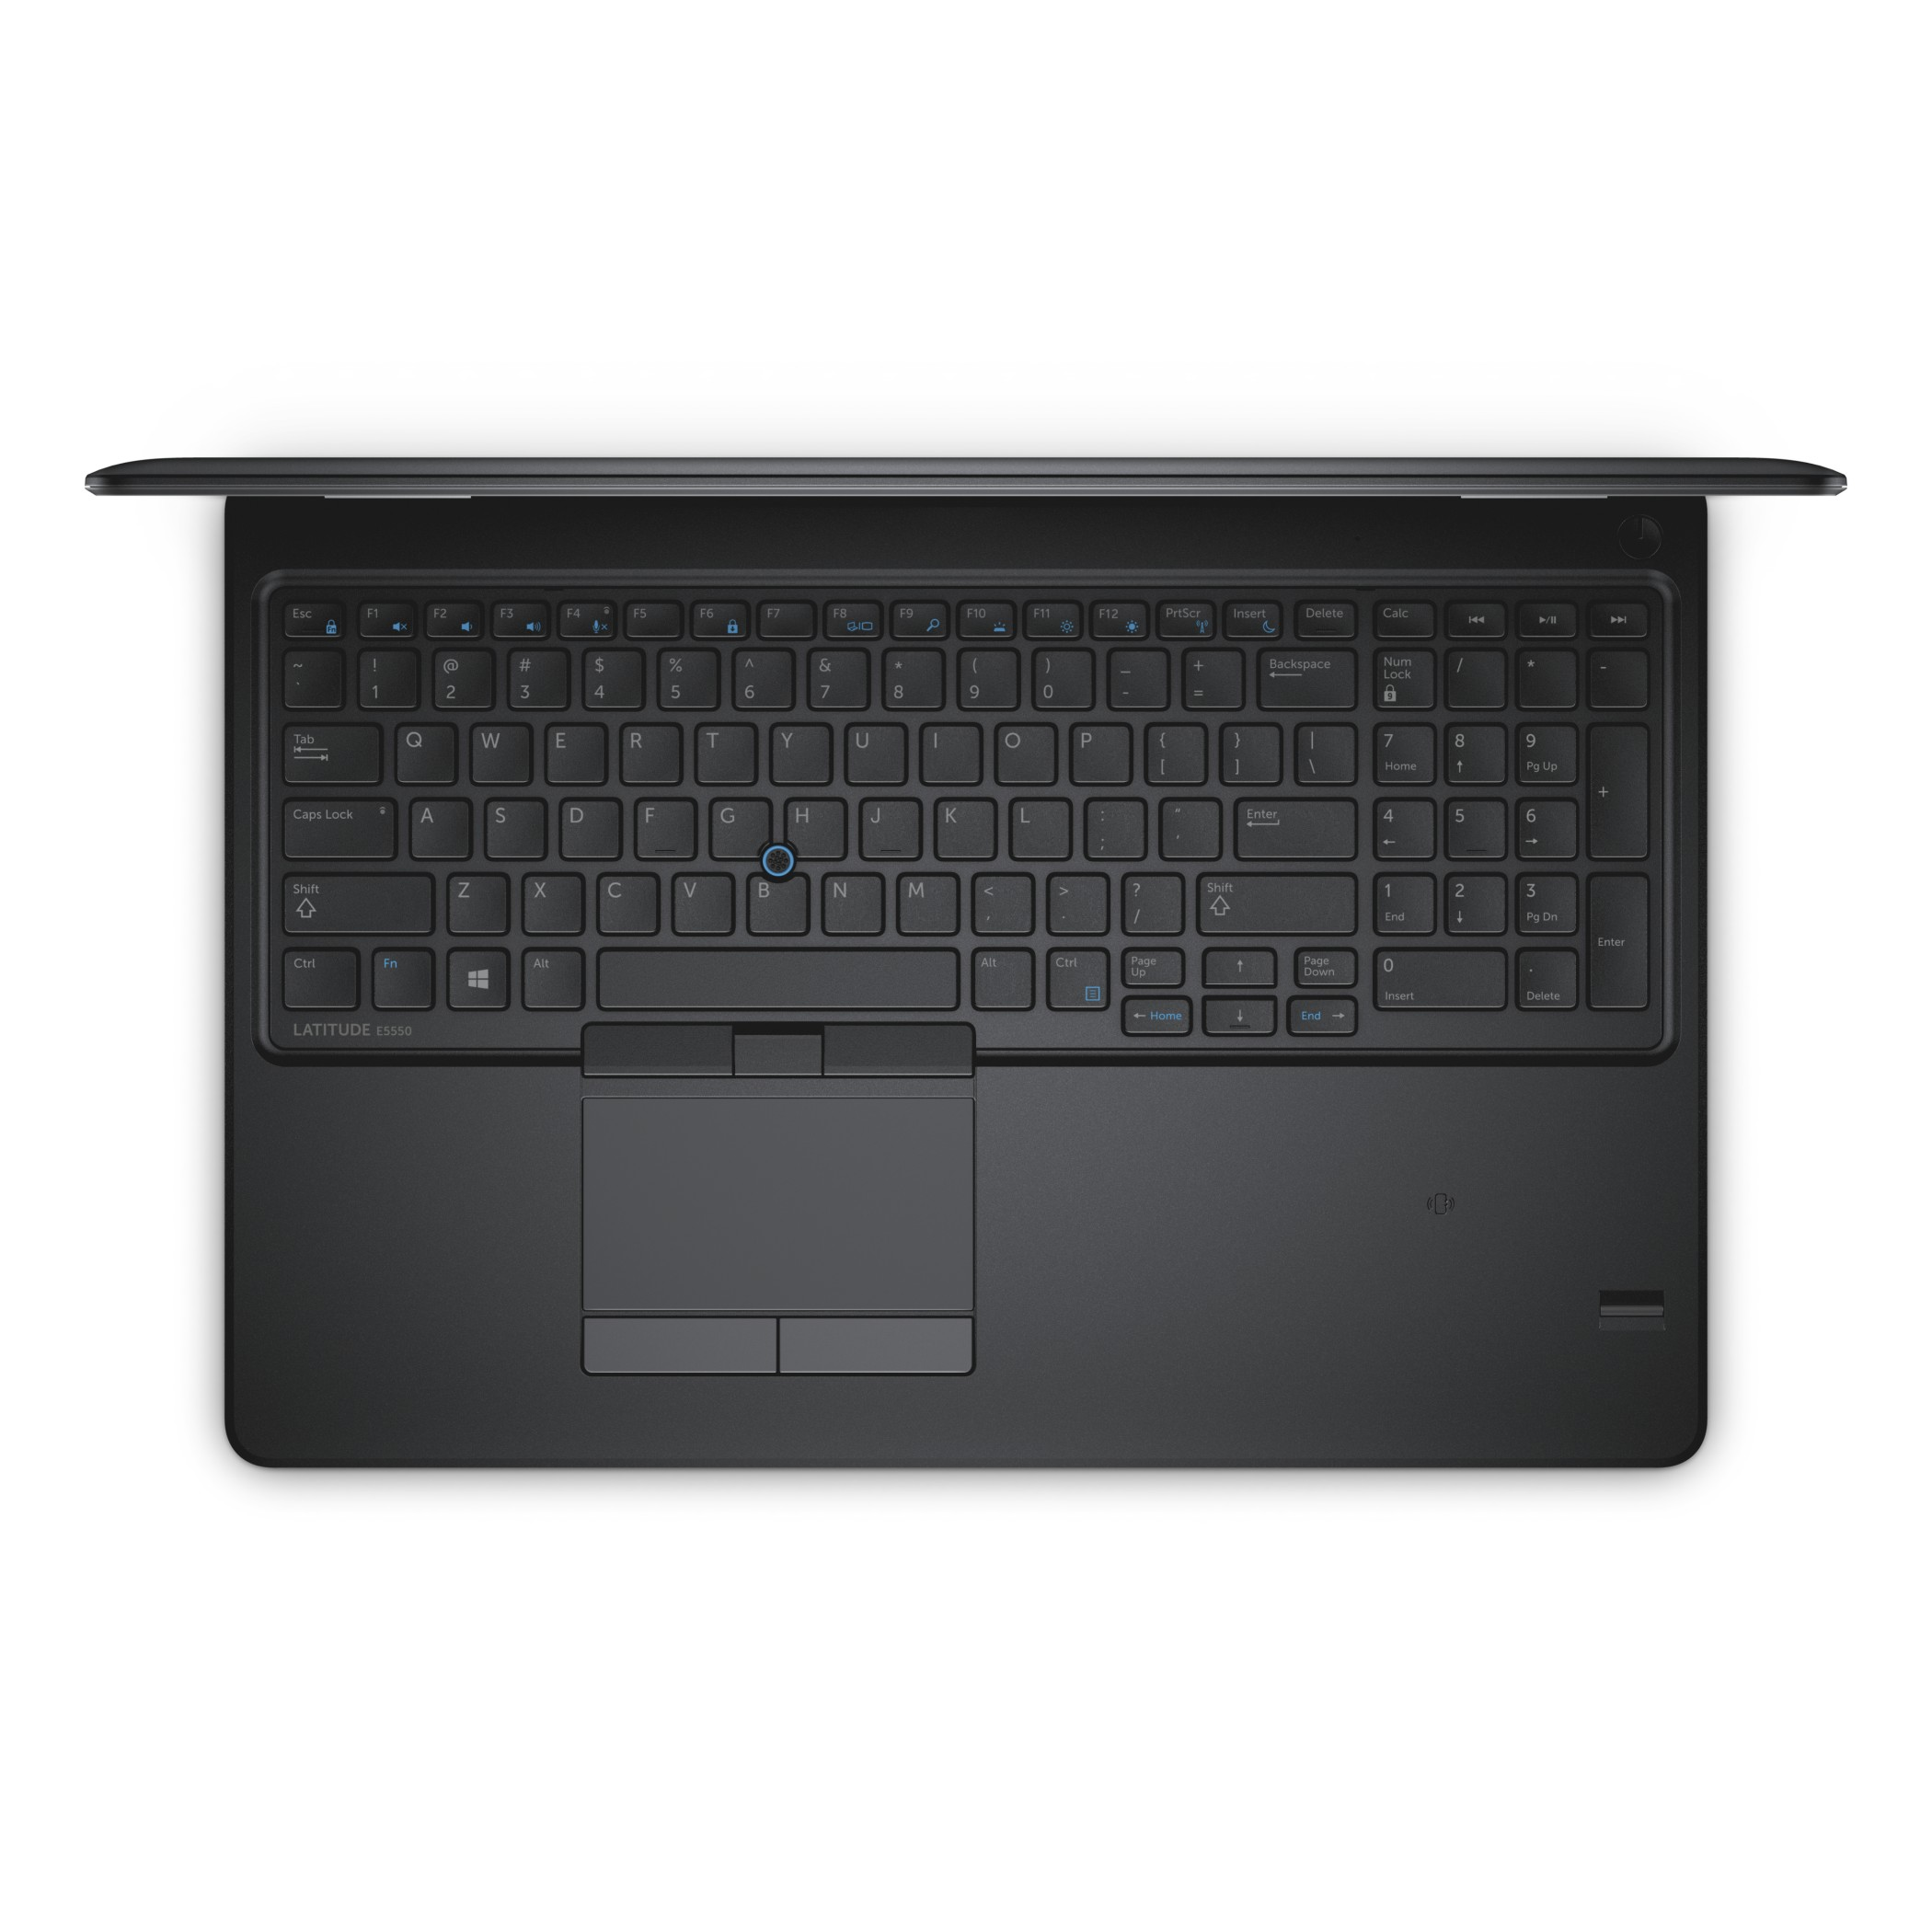 Dell Latitude 15 5000 Series (Model E5550) touch notebook computer, codename Houston.